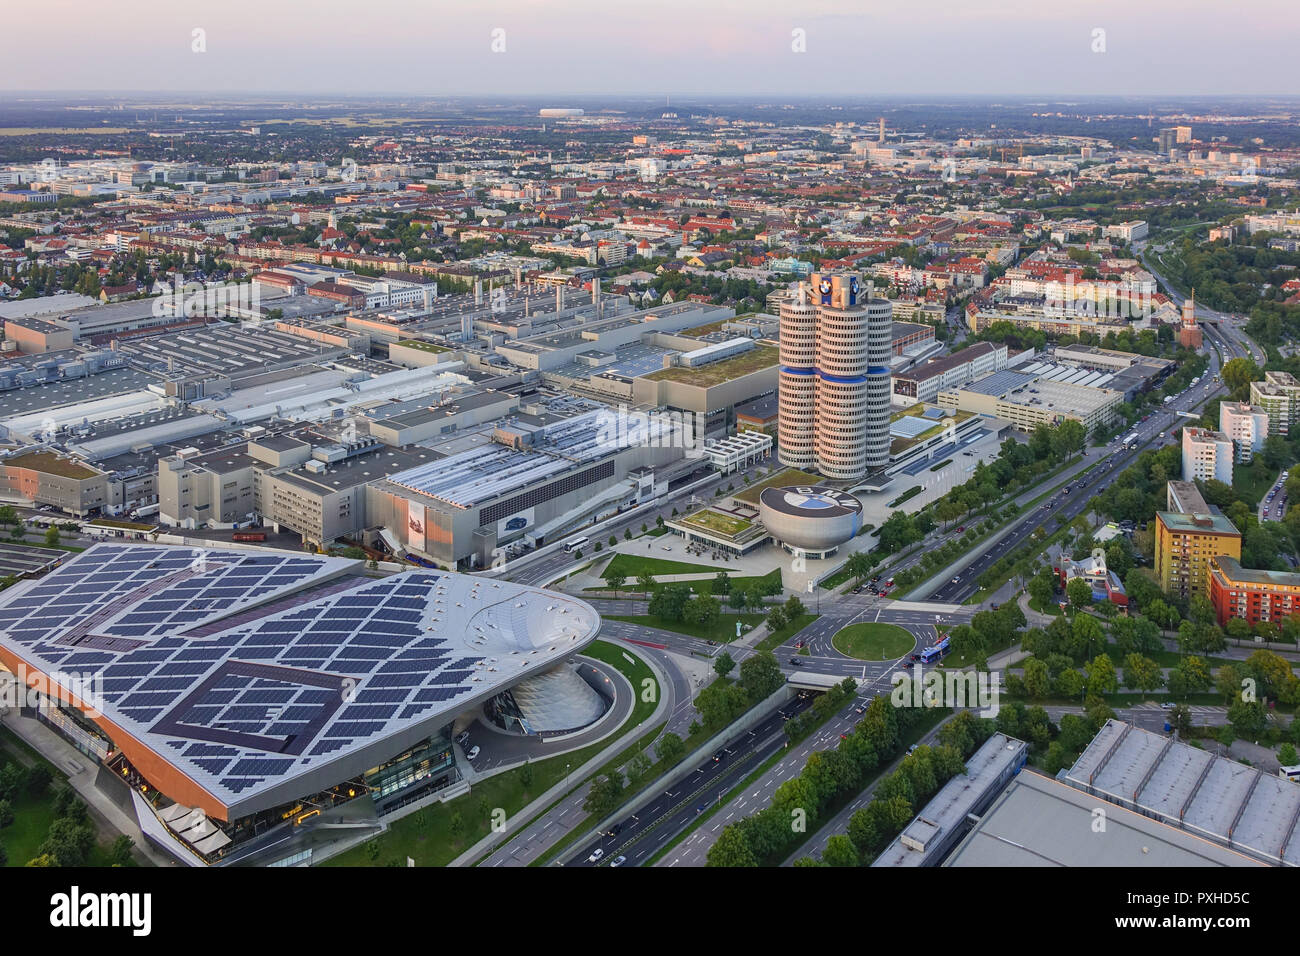 Blick auf die BMW-Welt und Hauptverwaltung 'BMW-Vierzylinder', München, Bayern, Deutschland, Europa, Look at the BMW Welt and Headquarters 'BMW four-c - Stock Image